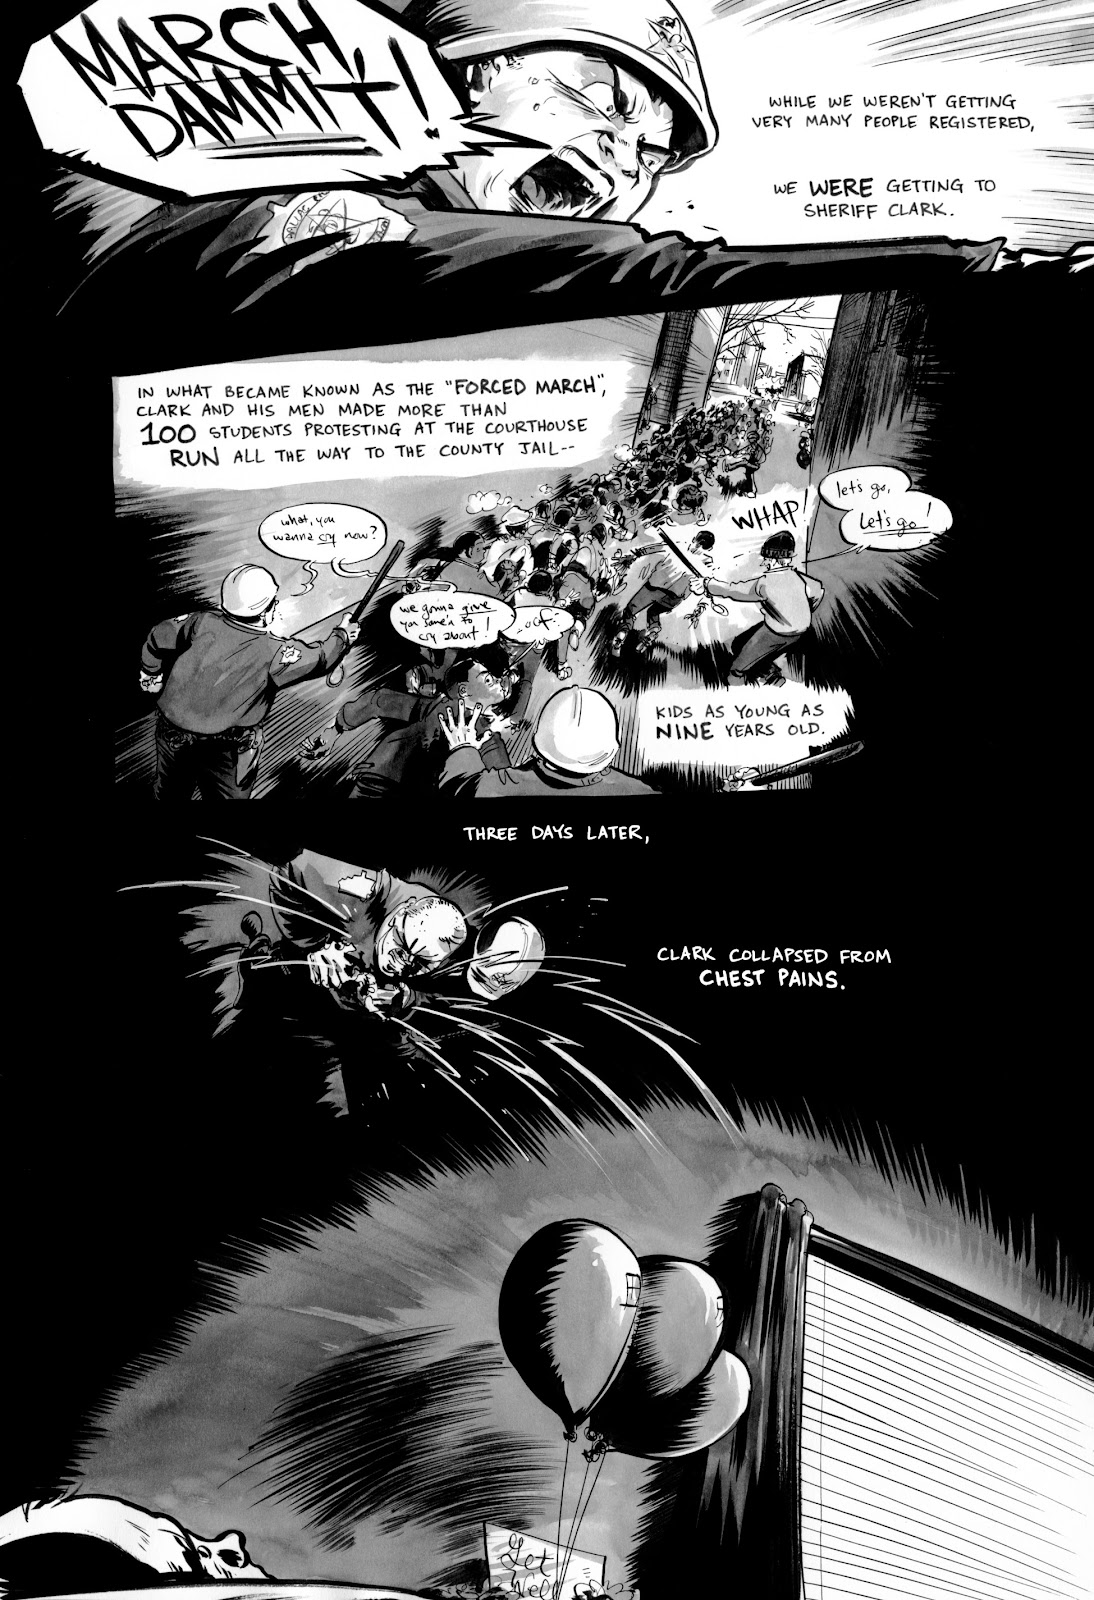 March 3 Page 164